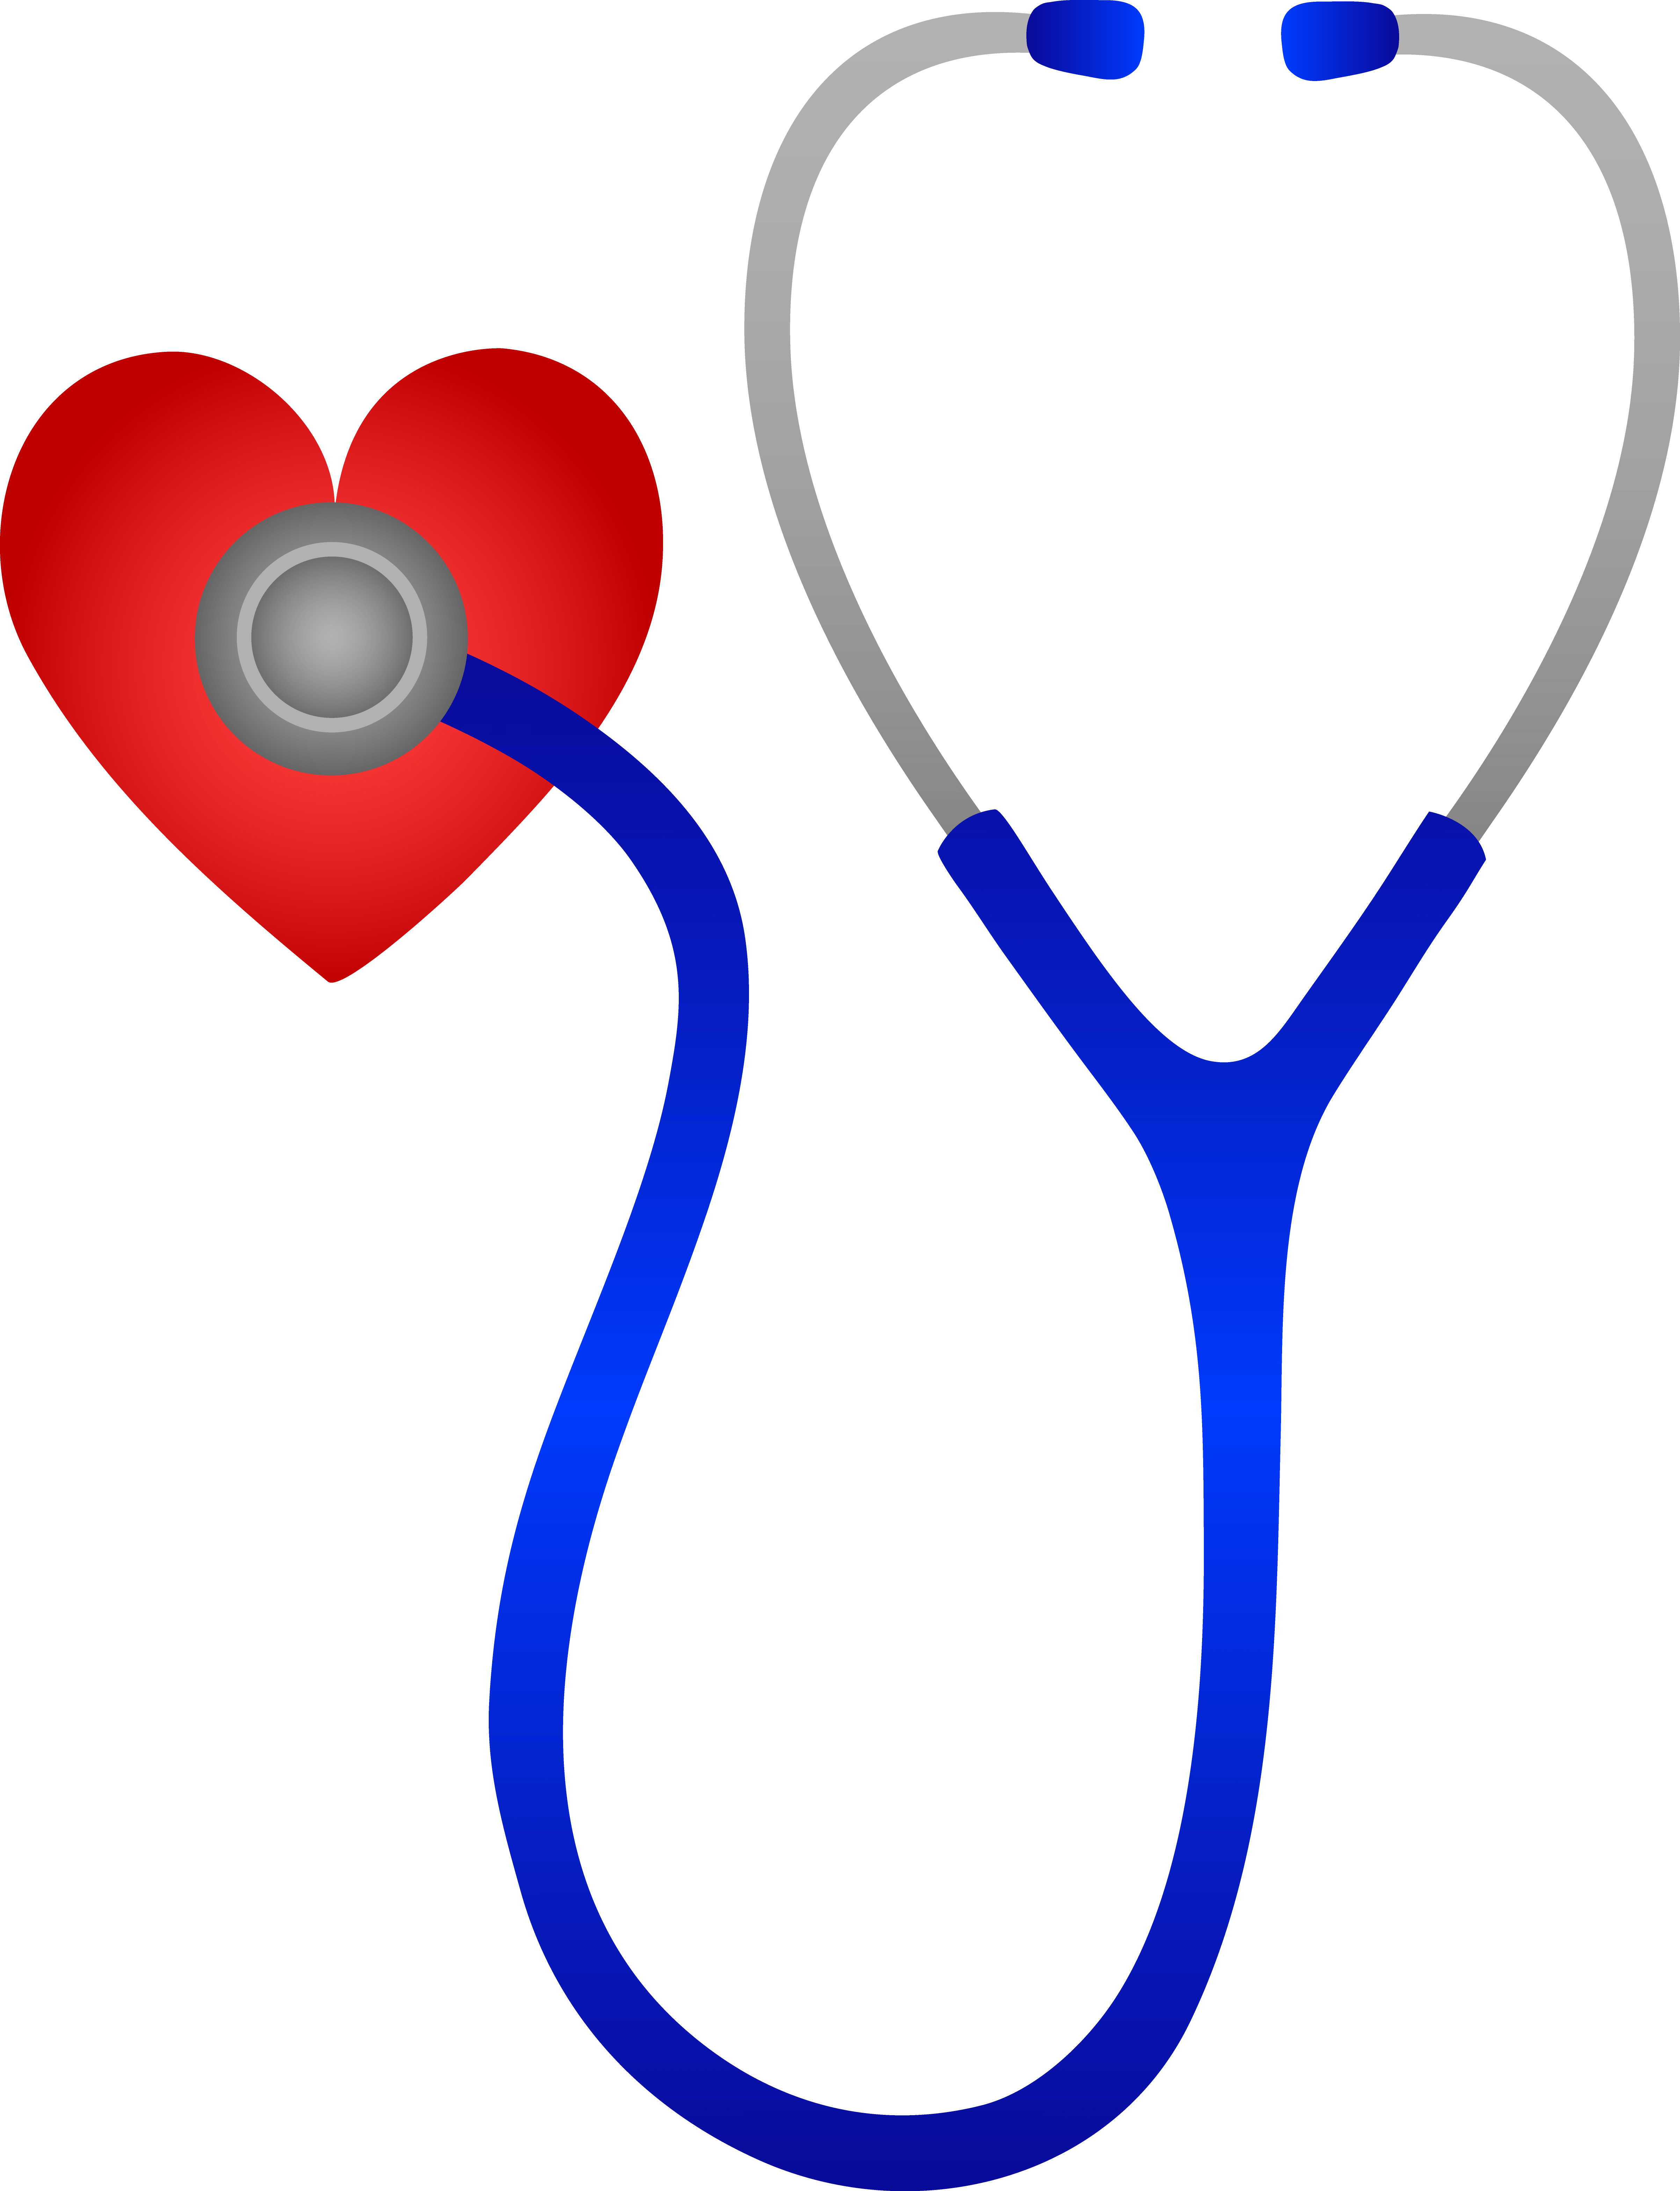 Transparent stethoscope nurse practitioner. For physicians and other